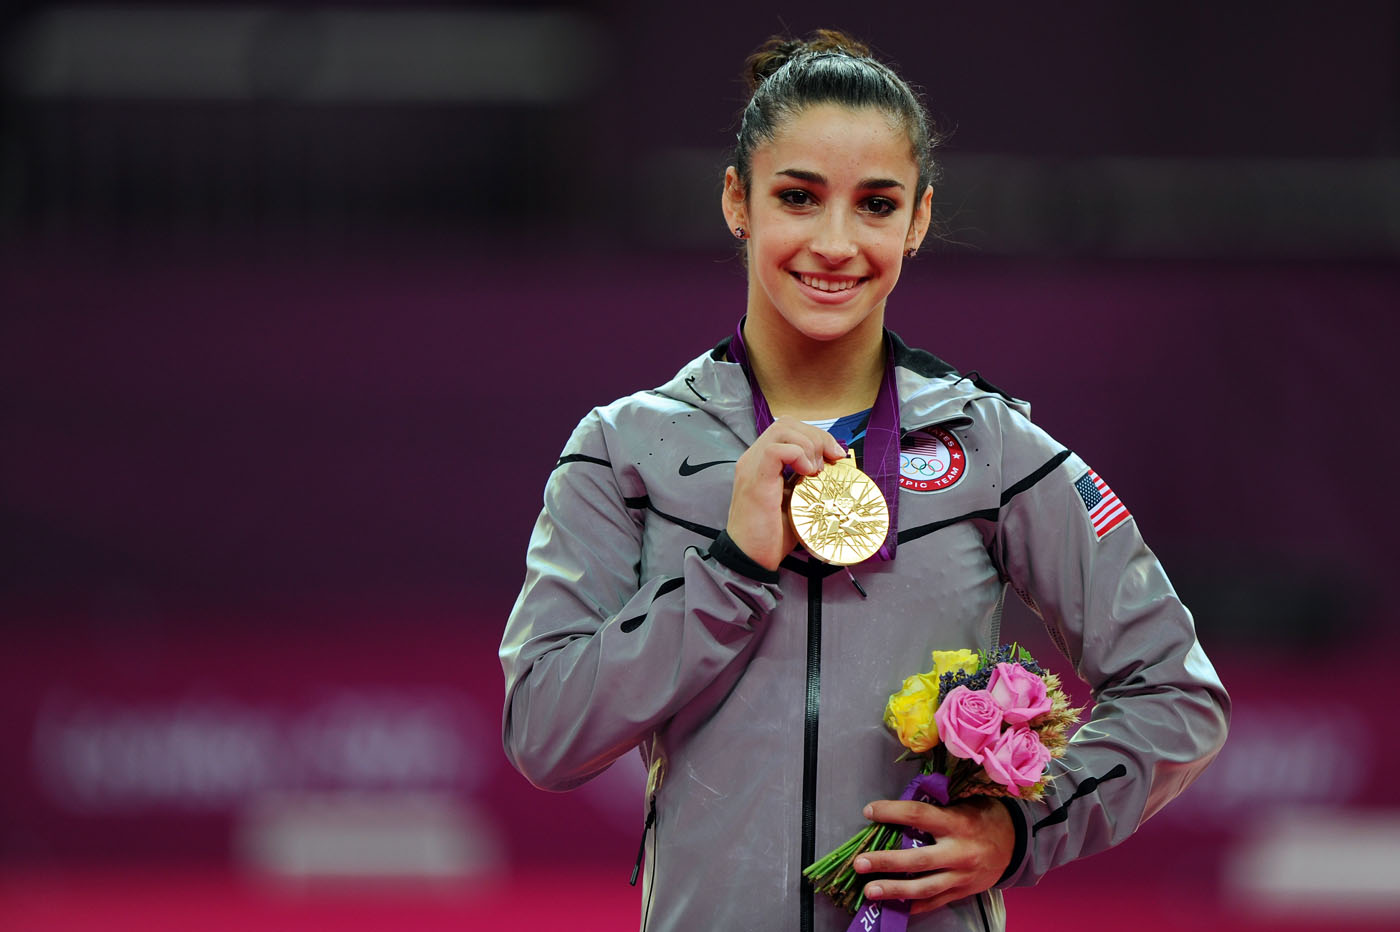 Latest Olympic Acheive Gold Aly Raisman Wallpaper Hd Photos